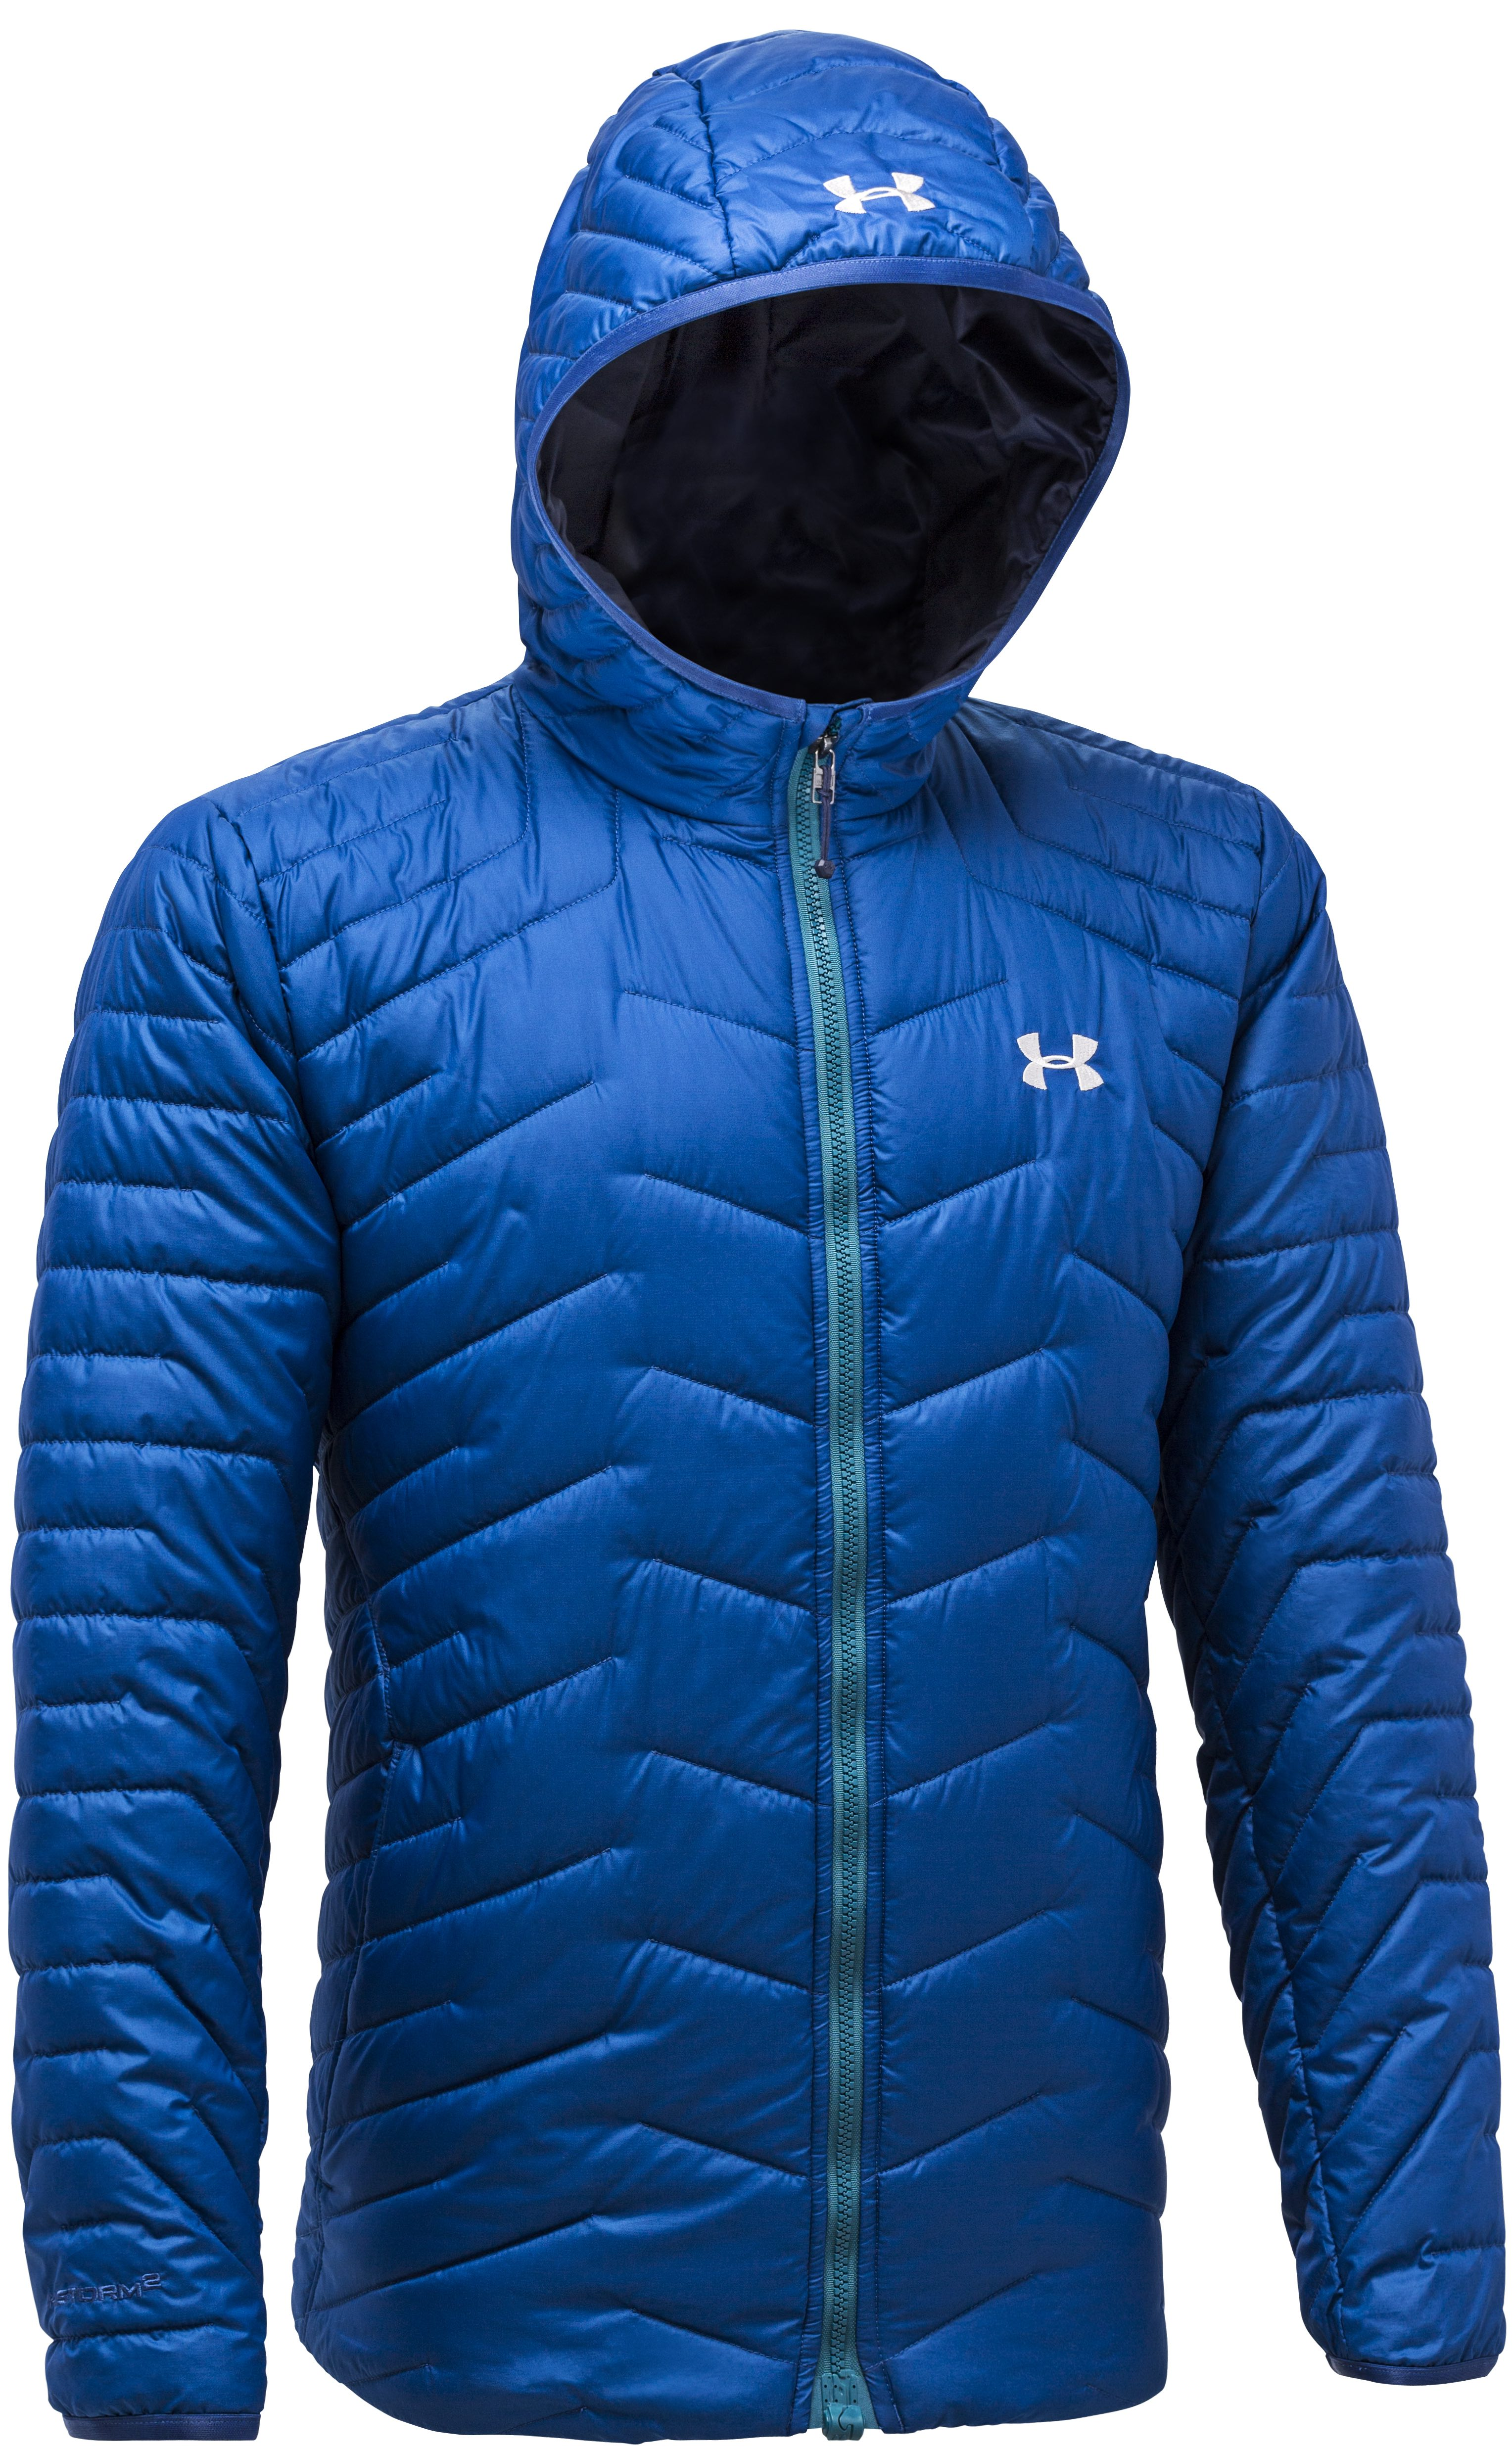 Under Armour Coldgear Reactor Hooded Jacket front. © Under Armour